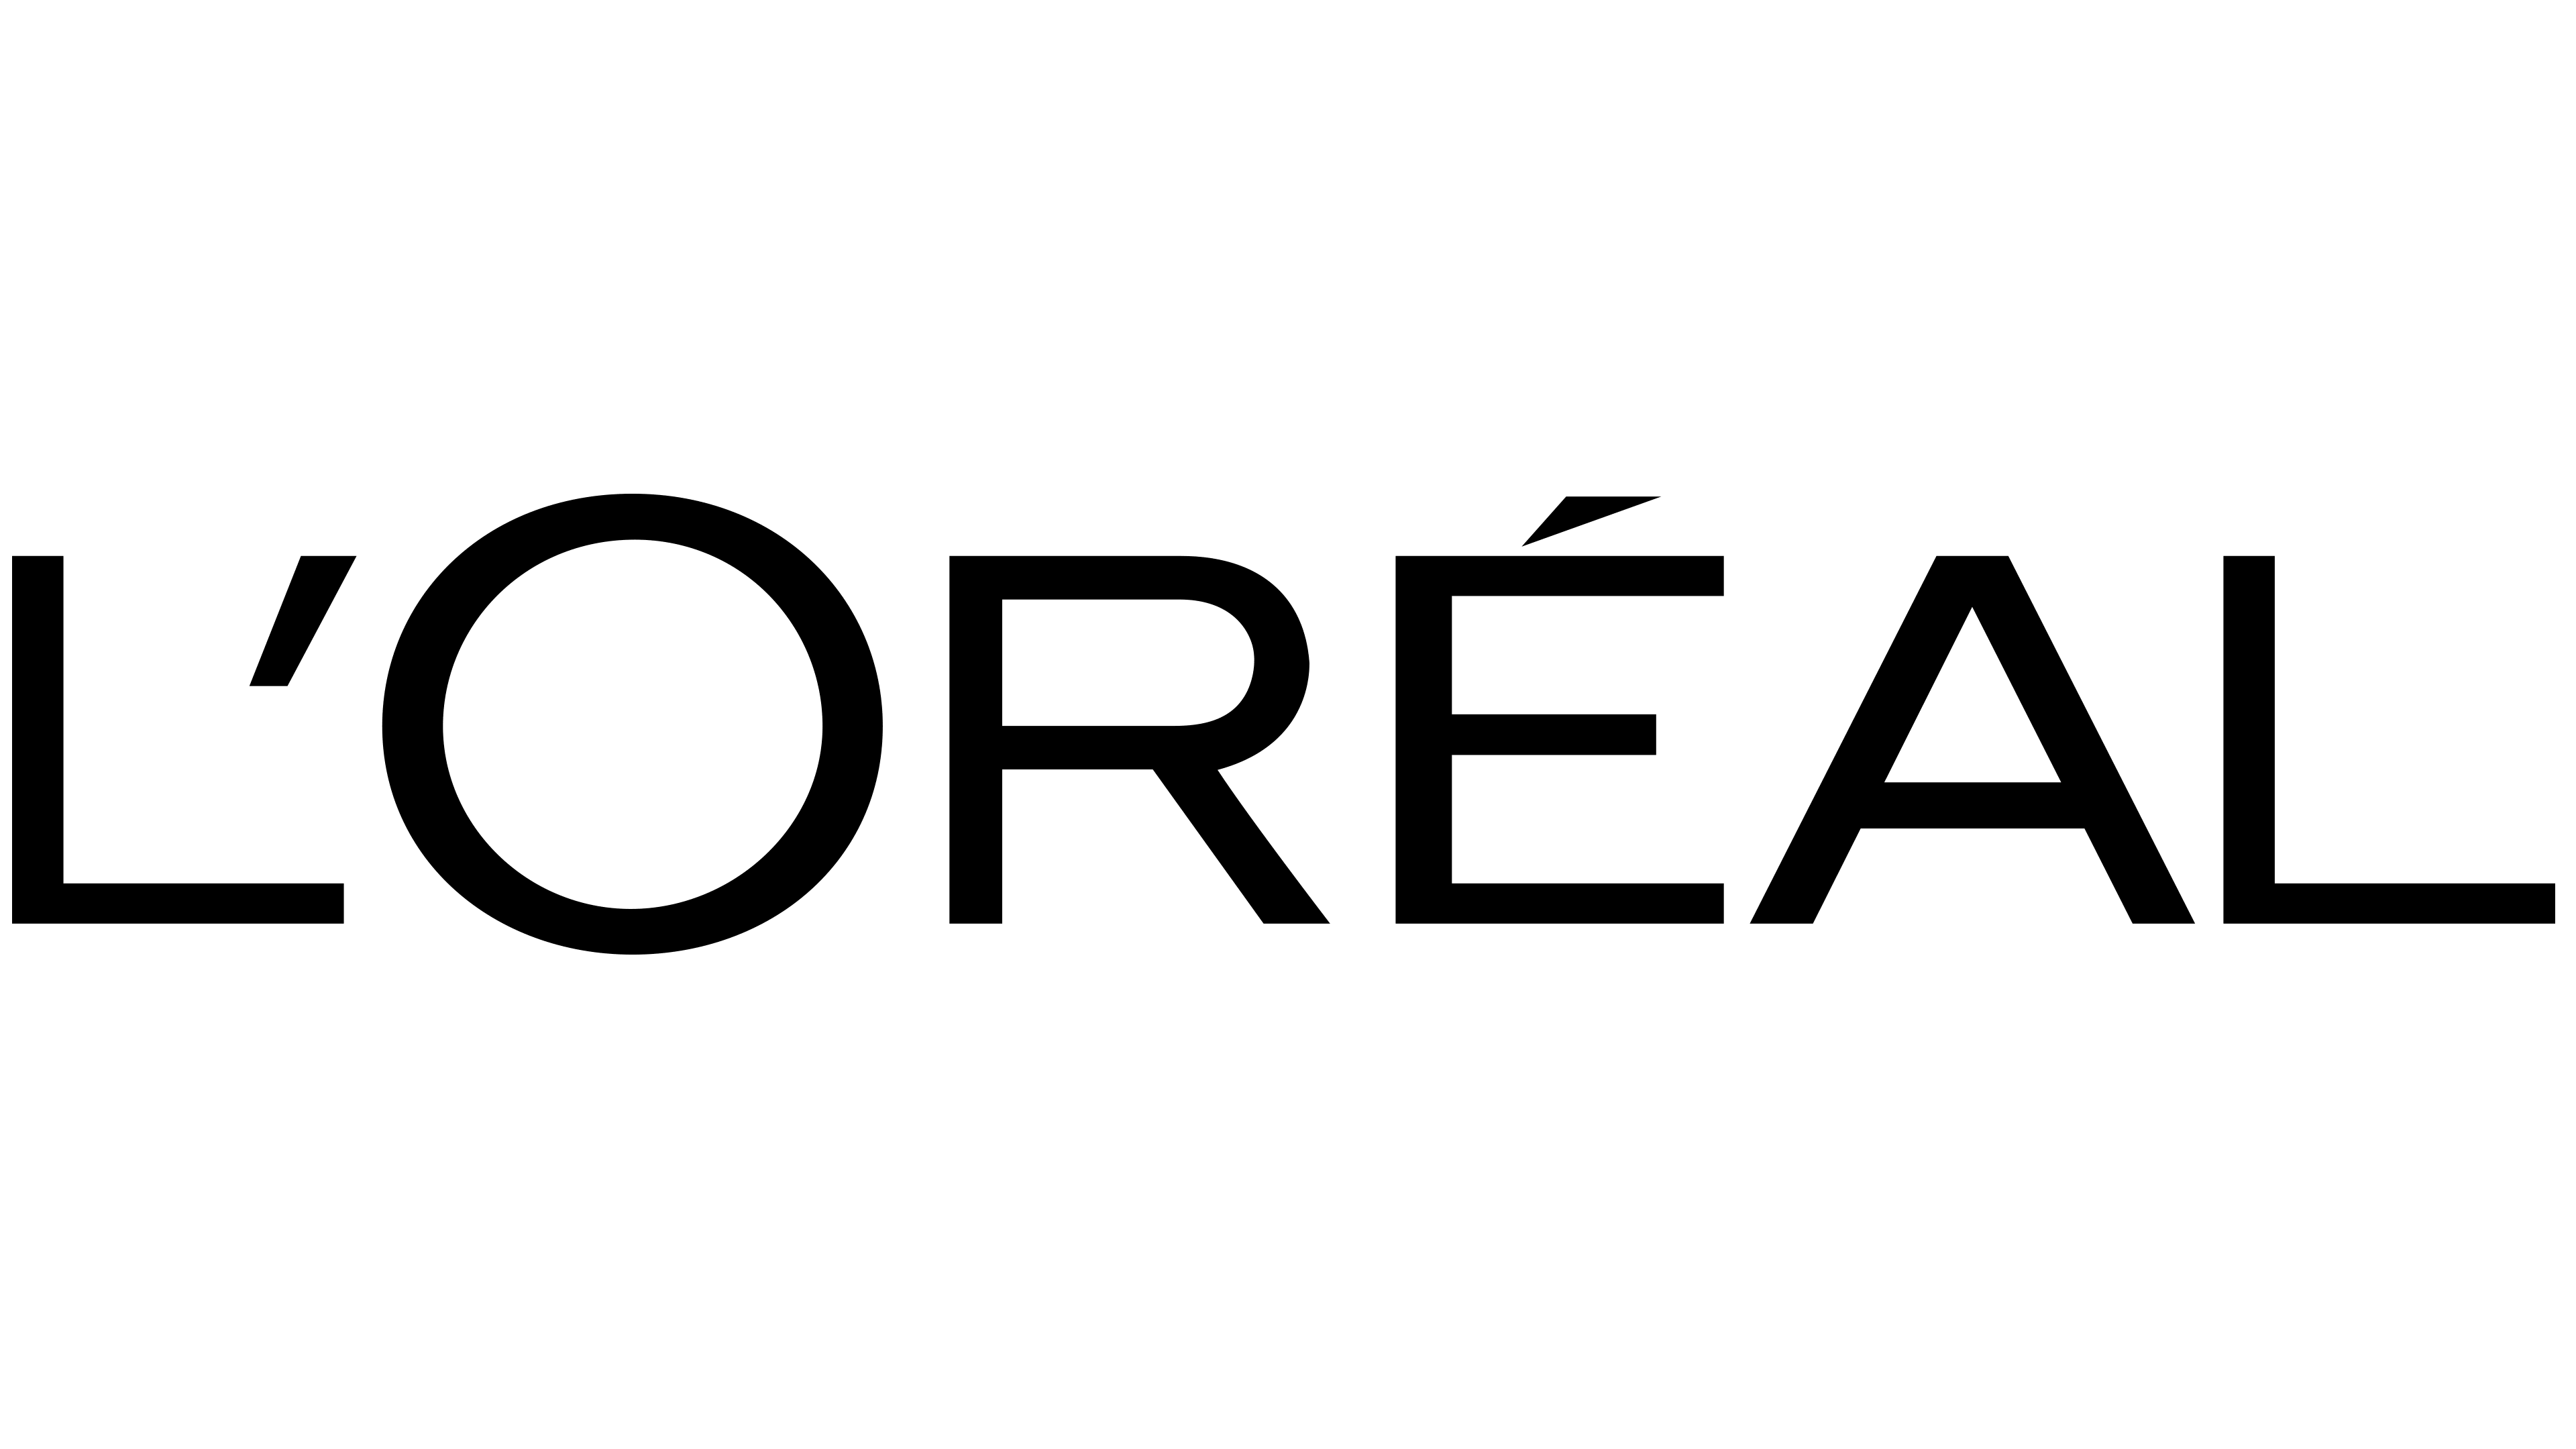 Loreal Logo | The Most Famous Brands And Company Logos In The World - Loreal Logo PNG